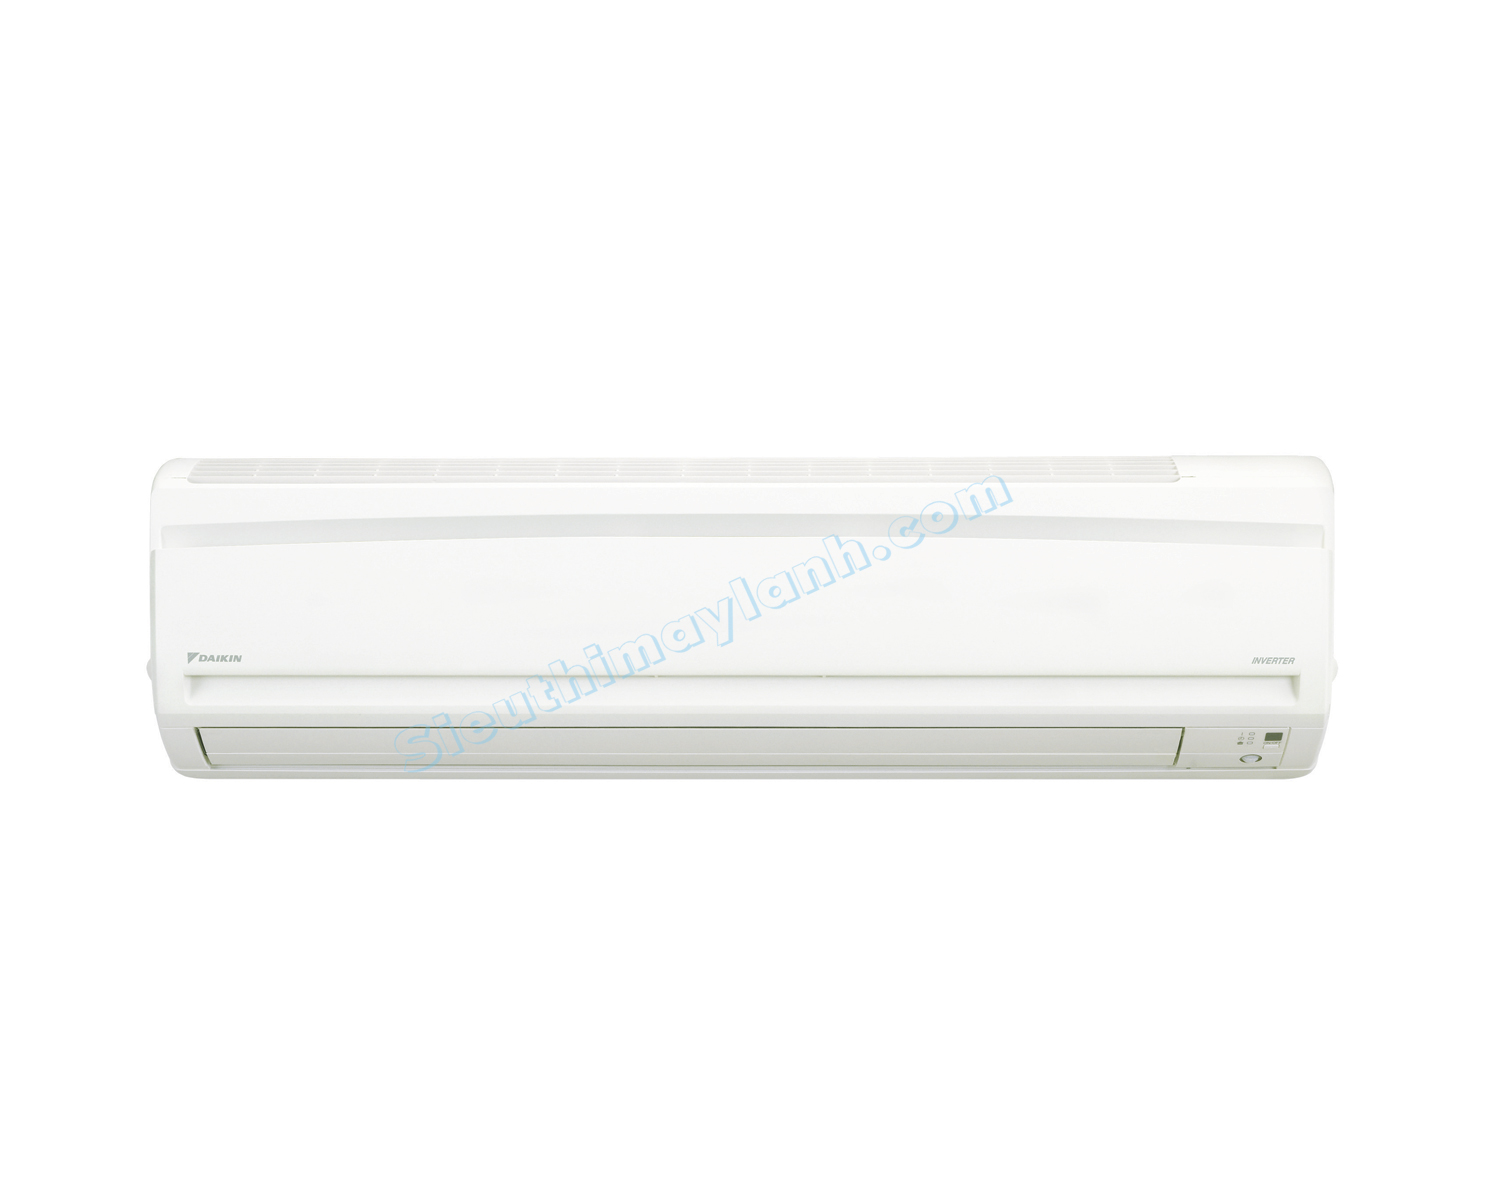 Indoor Unit Wall-Mounted AC Multi Daikin FTKS35DVM (1.5Hp) Inverter